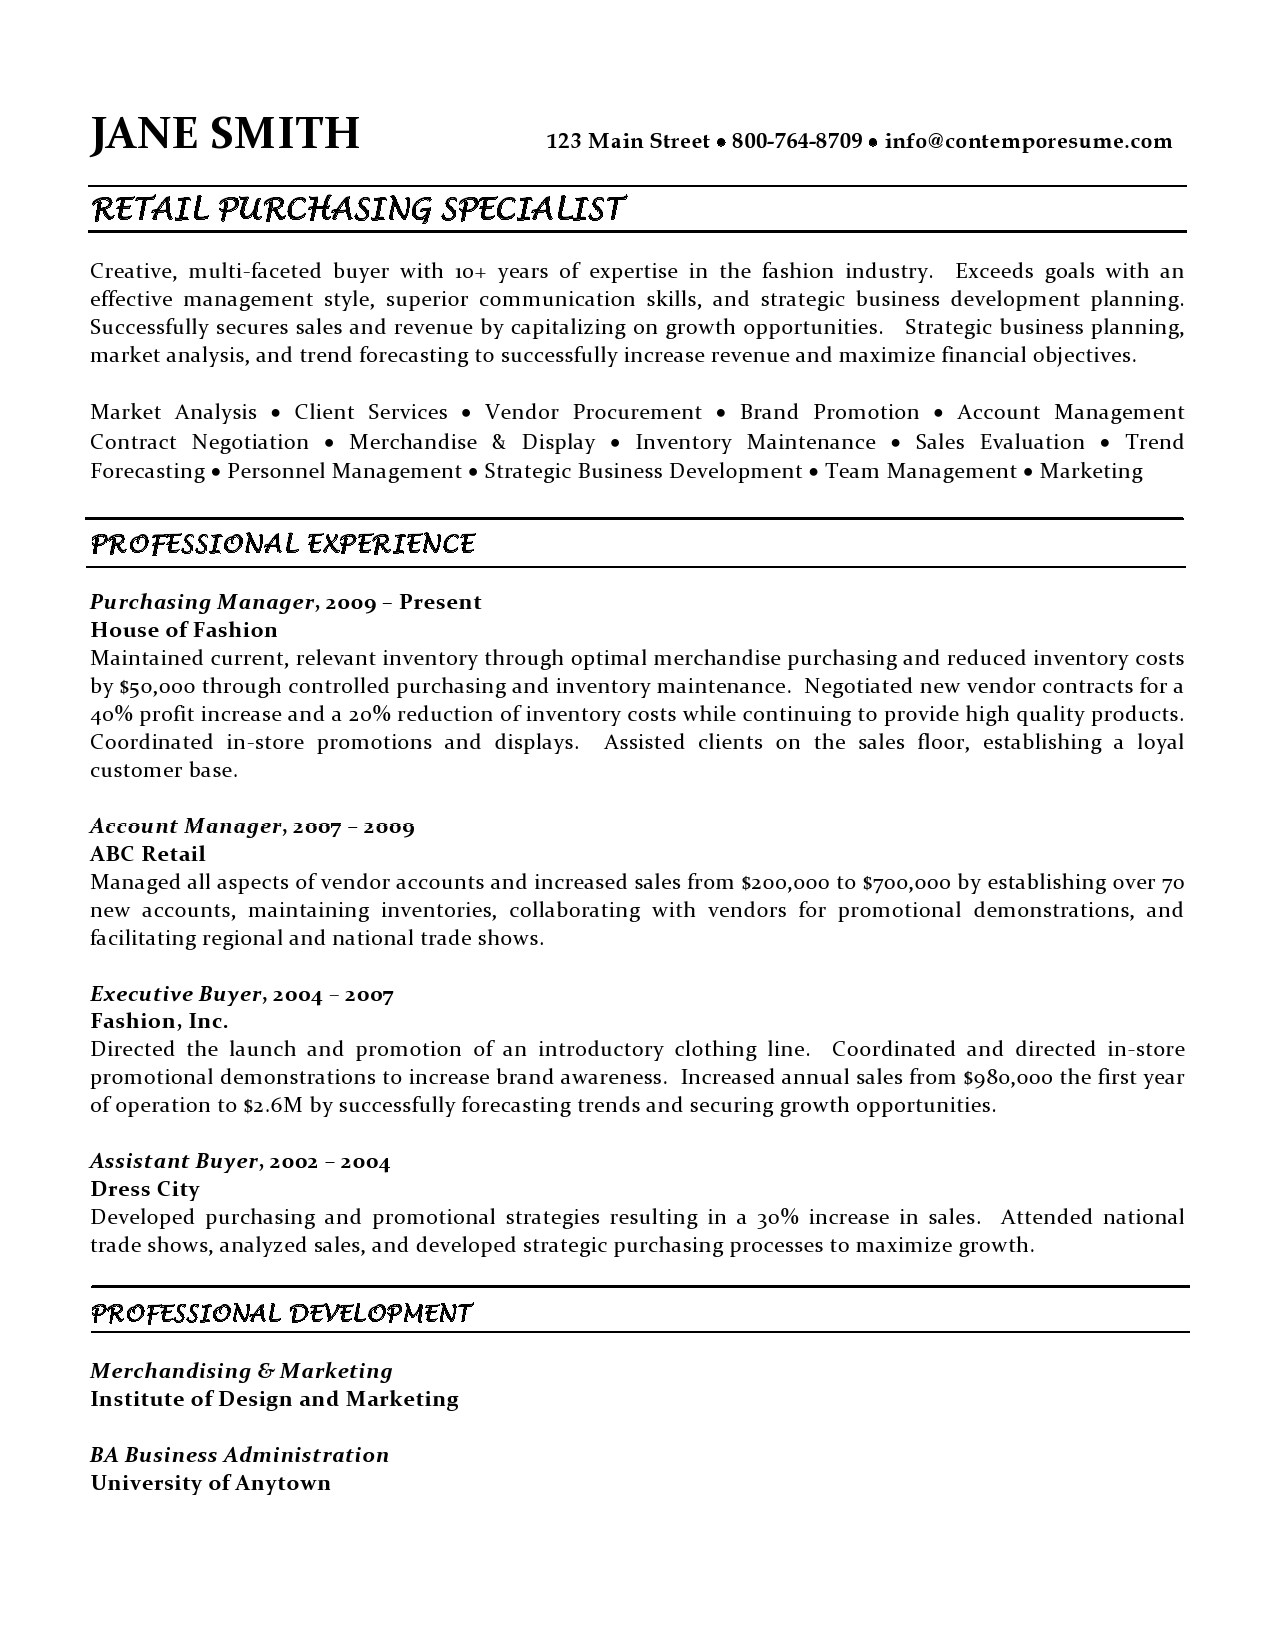 Sample Procurement Resume Retail Purchasing Specialist Resume